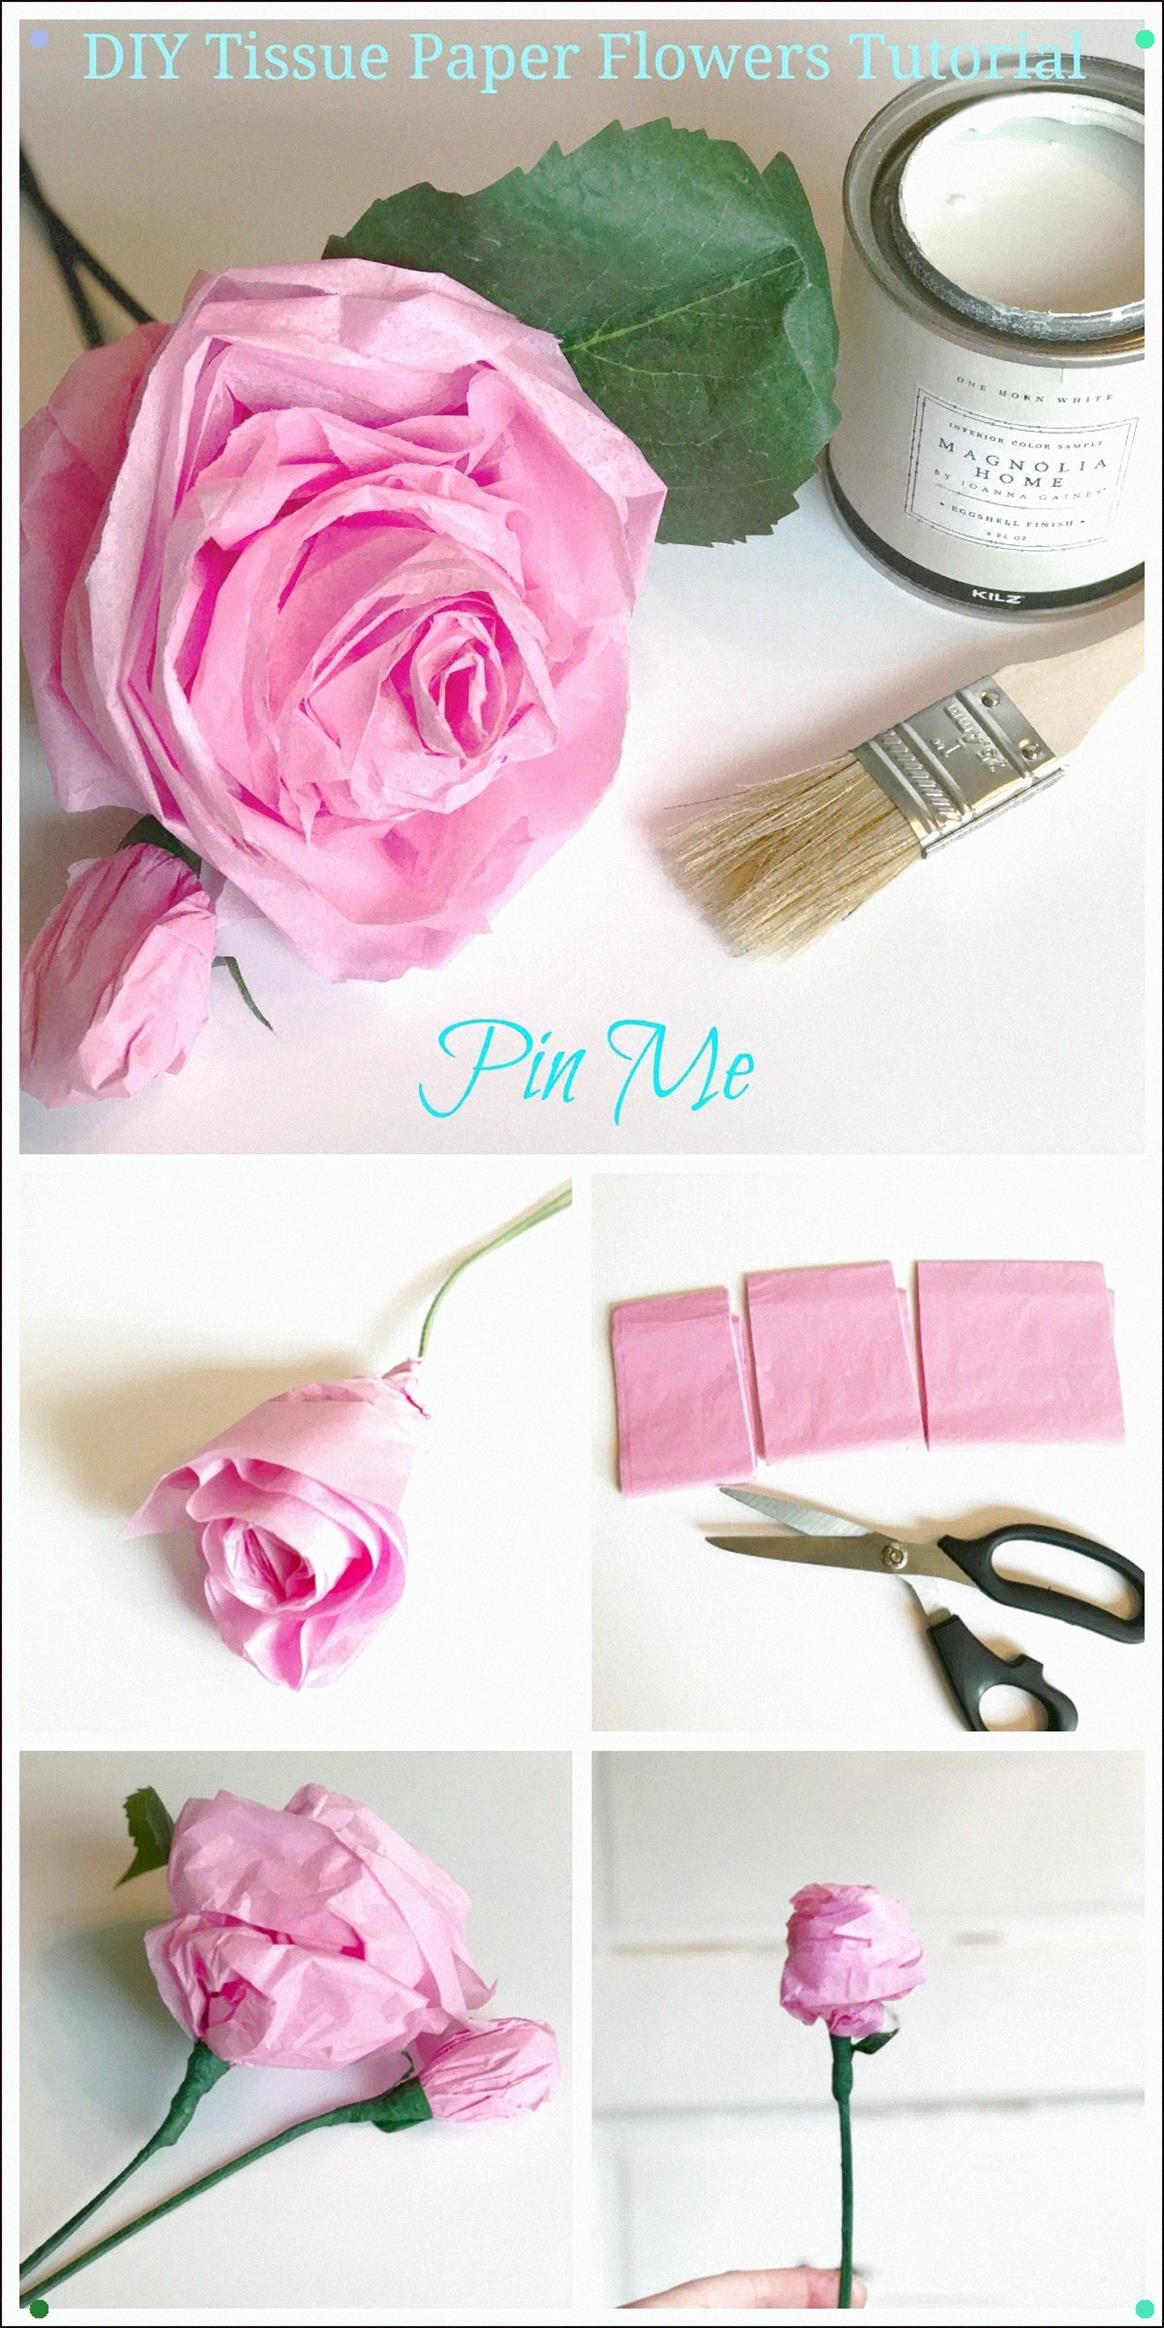 Diy Tissue Paper Flowers Tutorial Hallstrom Home With Images